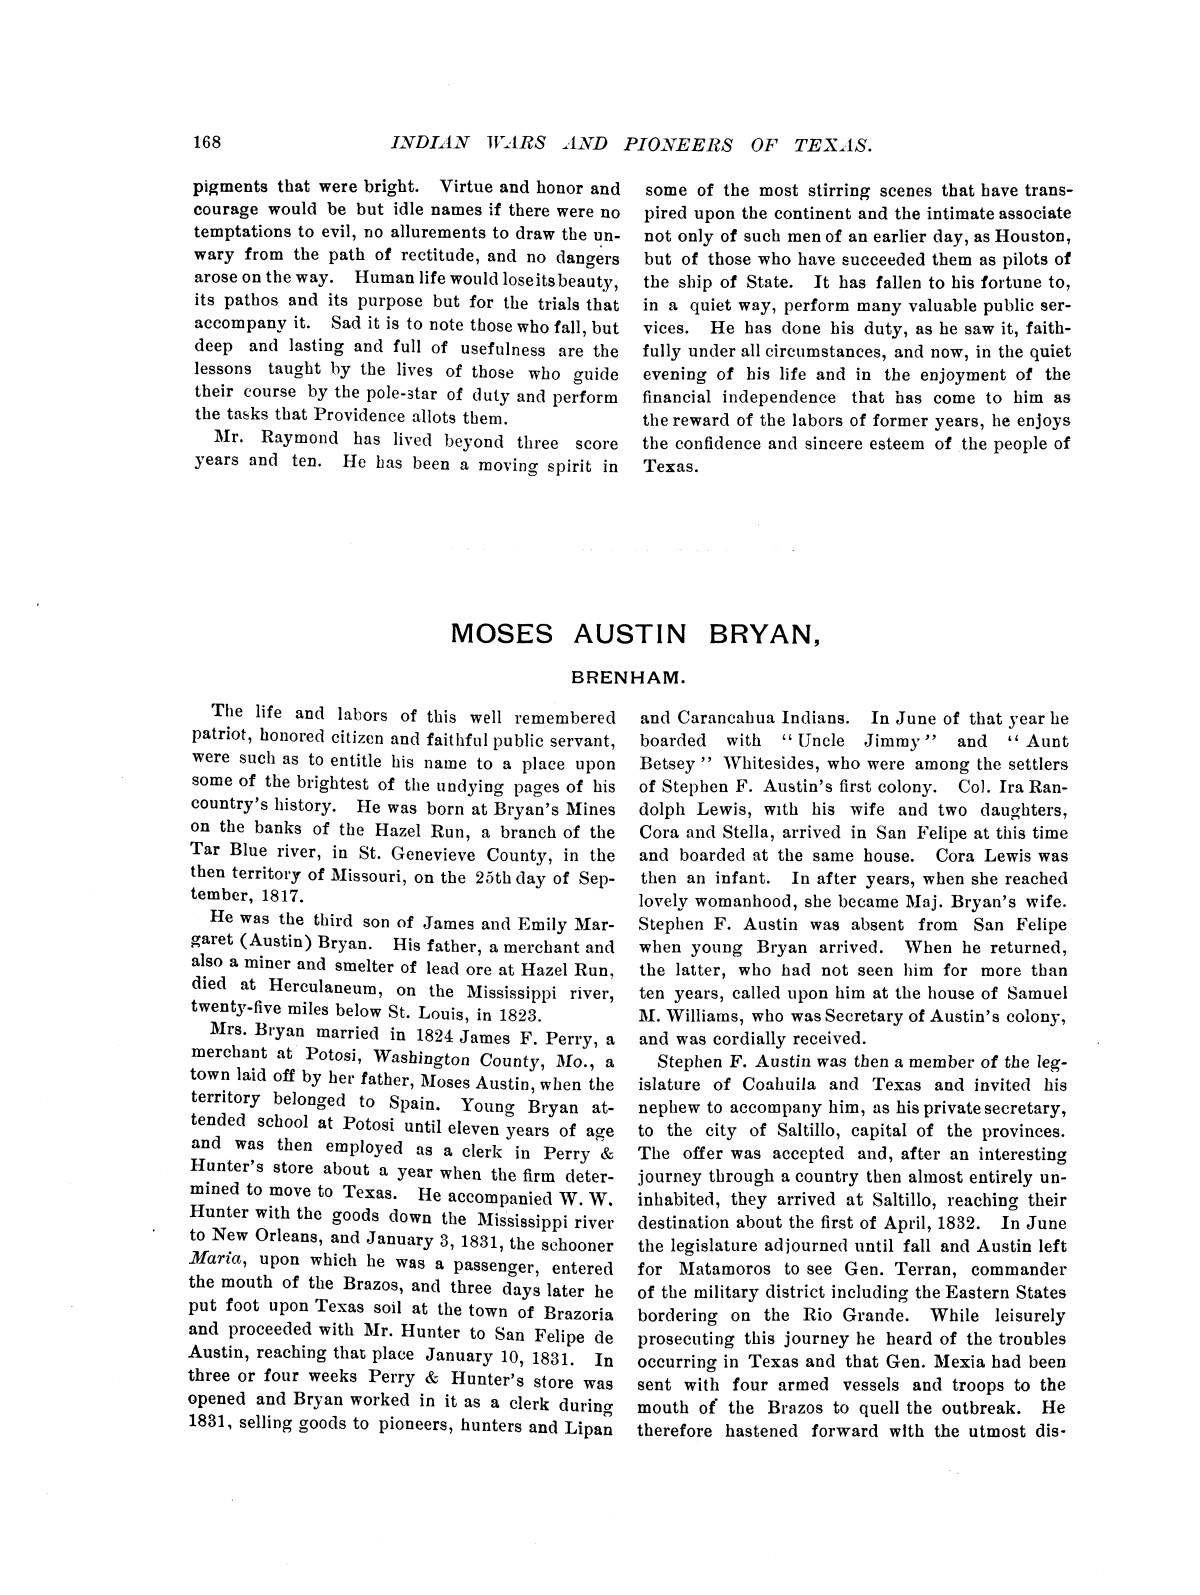 Indian wars and pioneers of Texas / by John Henry Brown.                                                                                                      [Sequence #]: 184 of 894